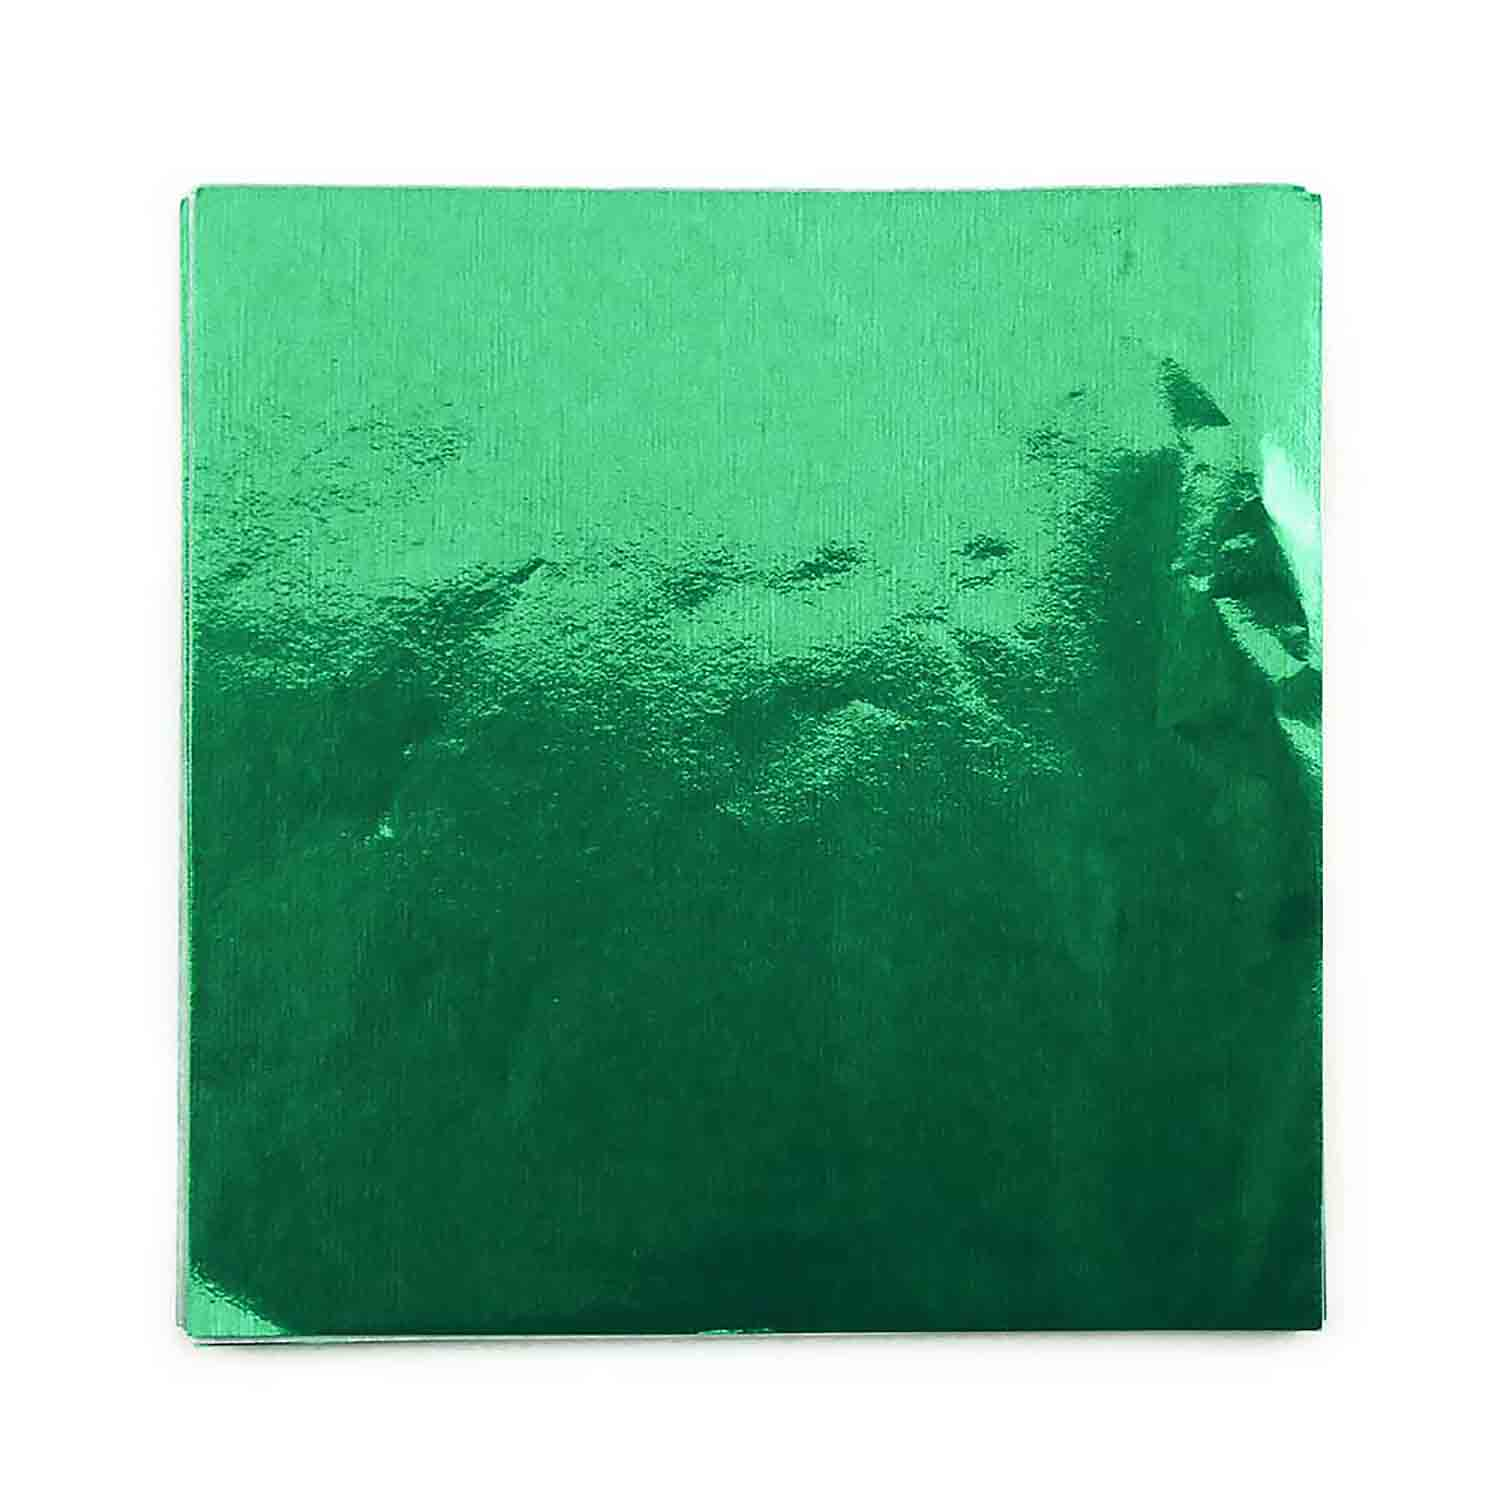 "3 x 3"" Foil Wrapper Green"